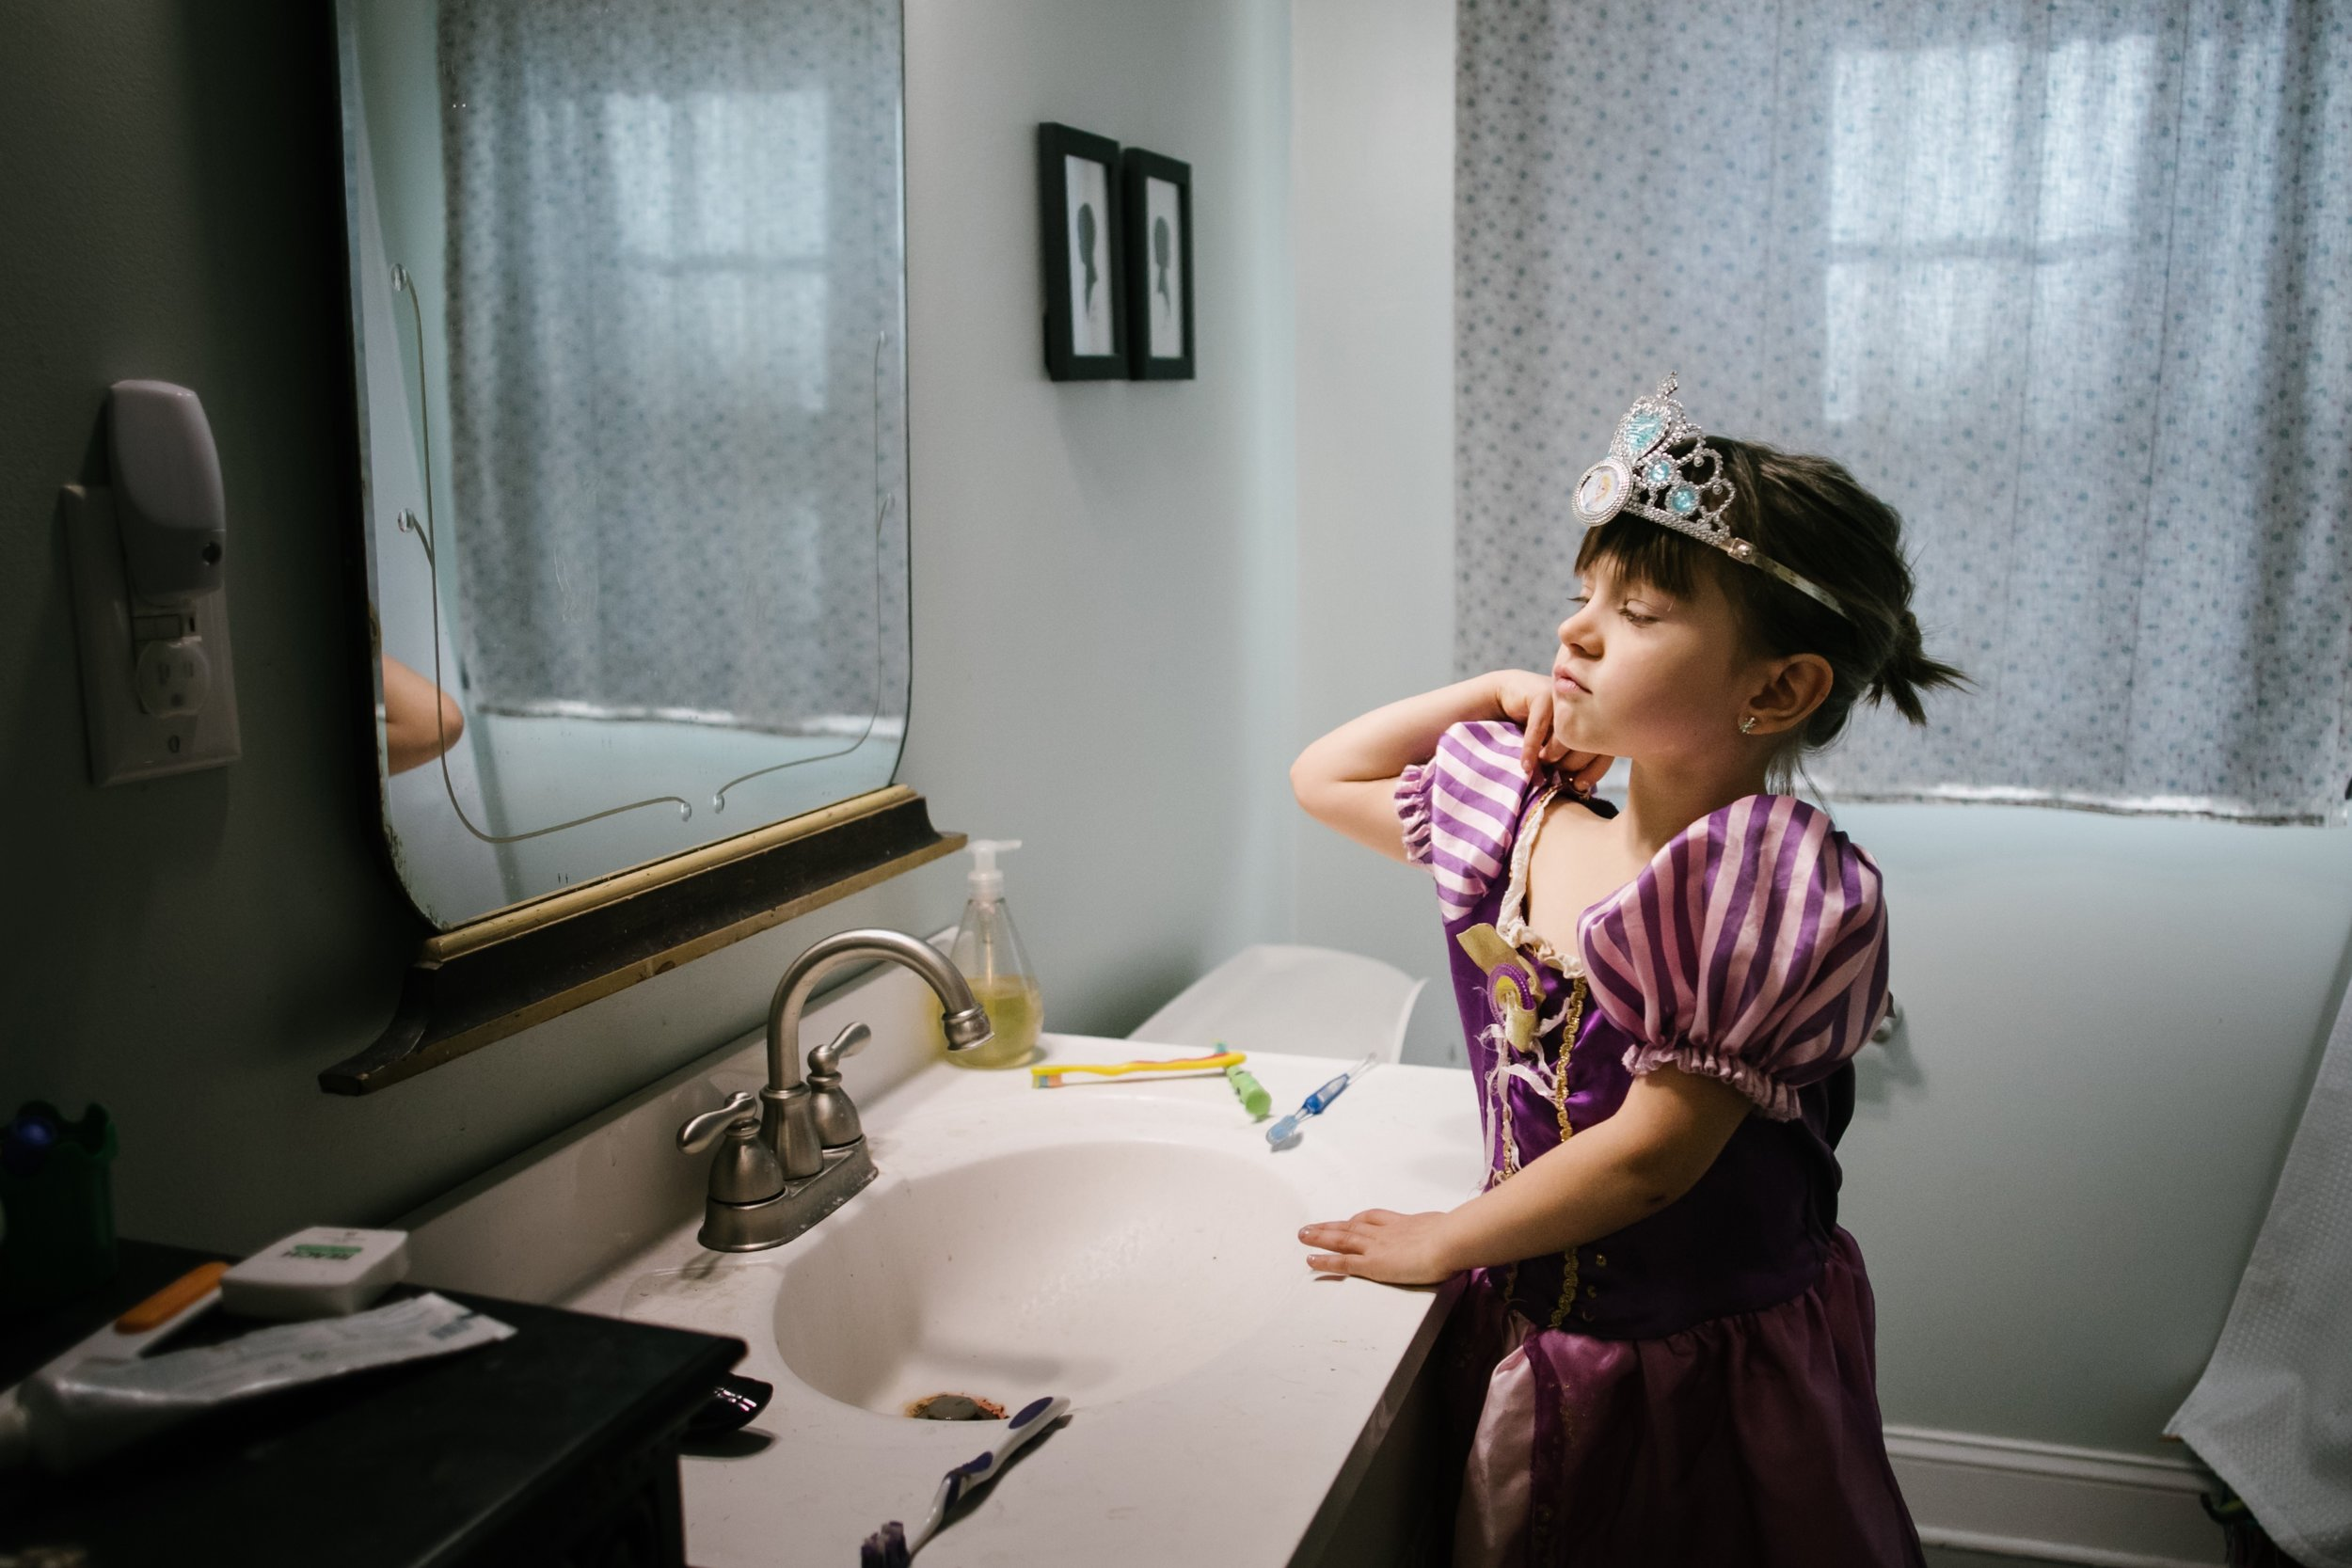 Girl standing in front of a mirror with a princess dress and hat on while flexing her muscles